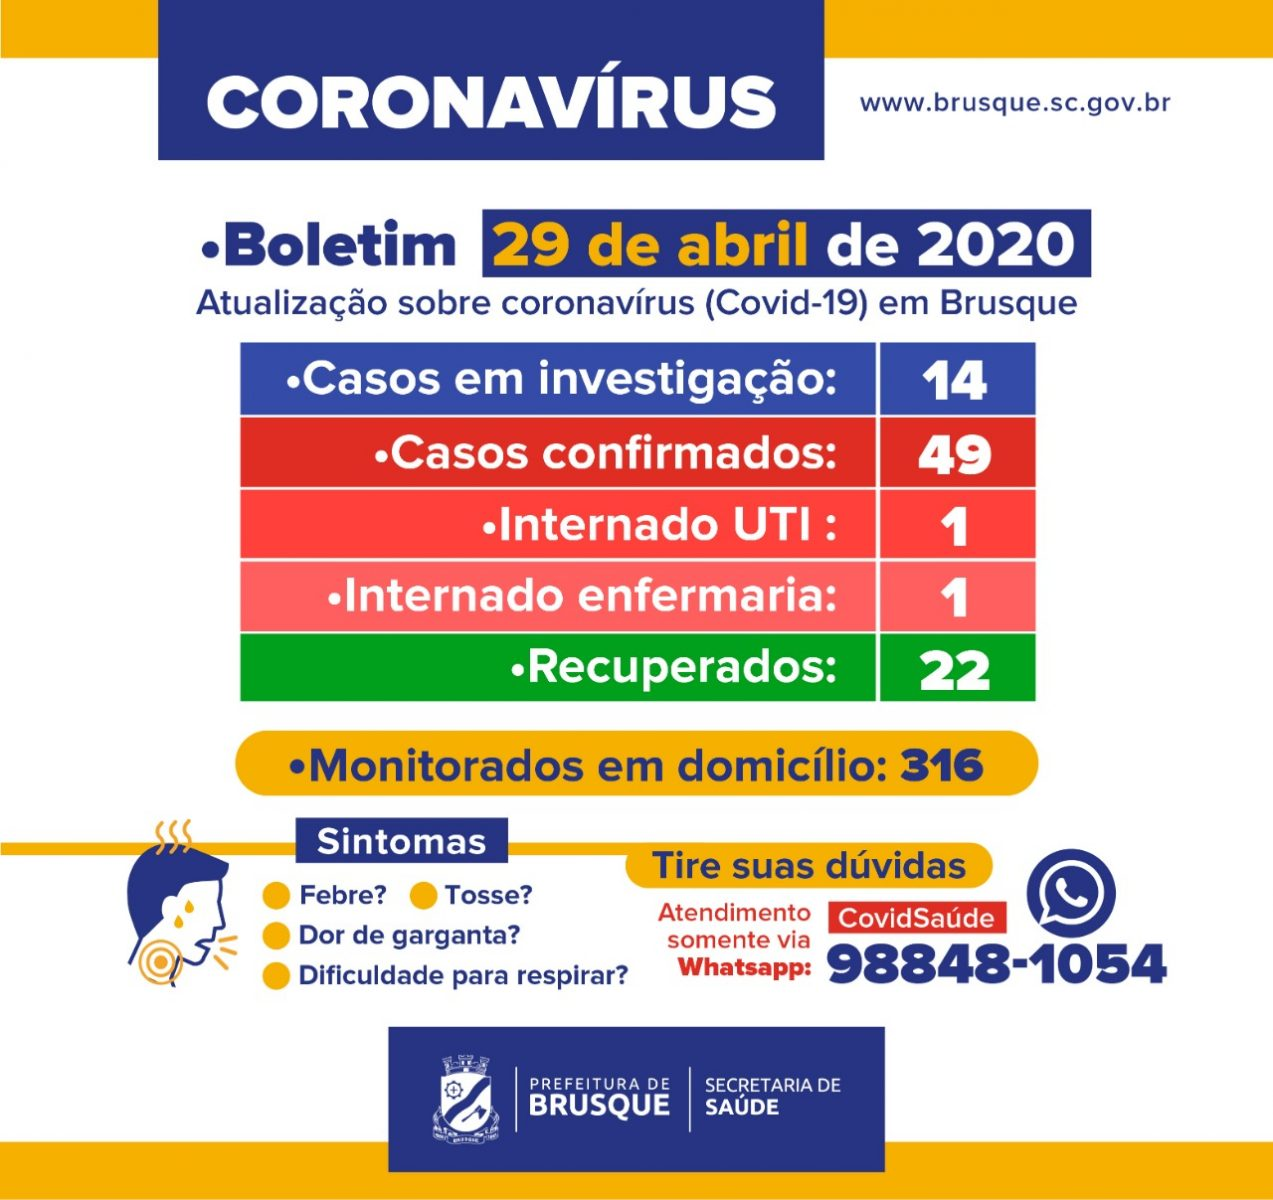 Brusque permanece com 49 casos confirmados do novo coronavírus